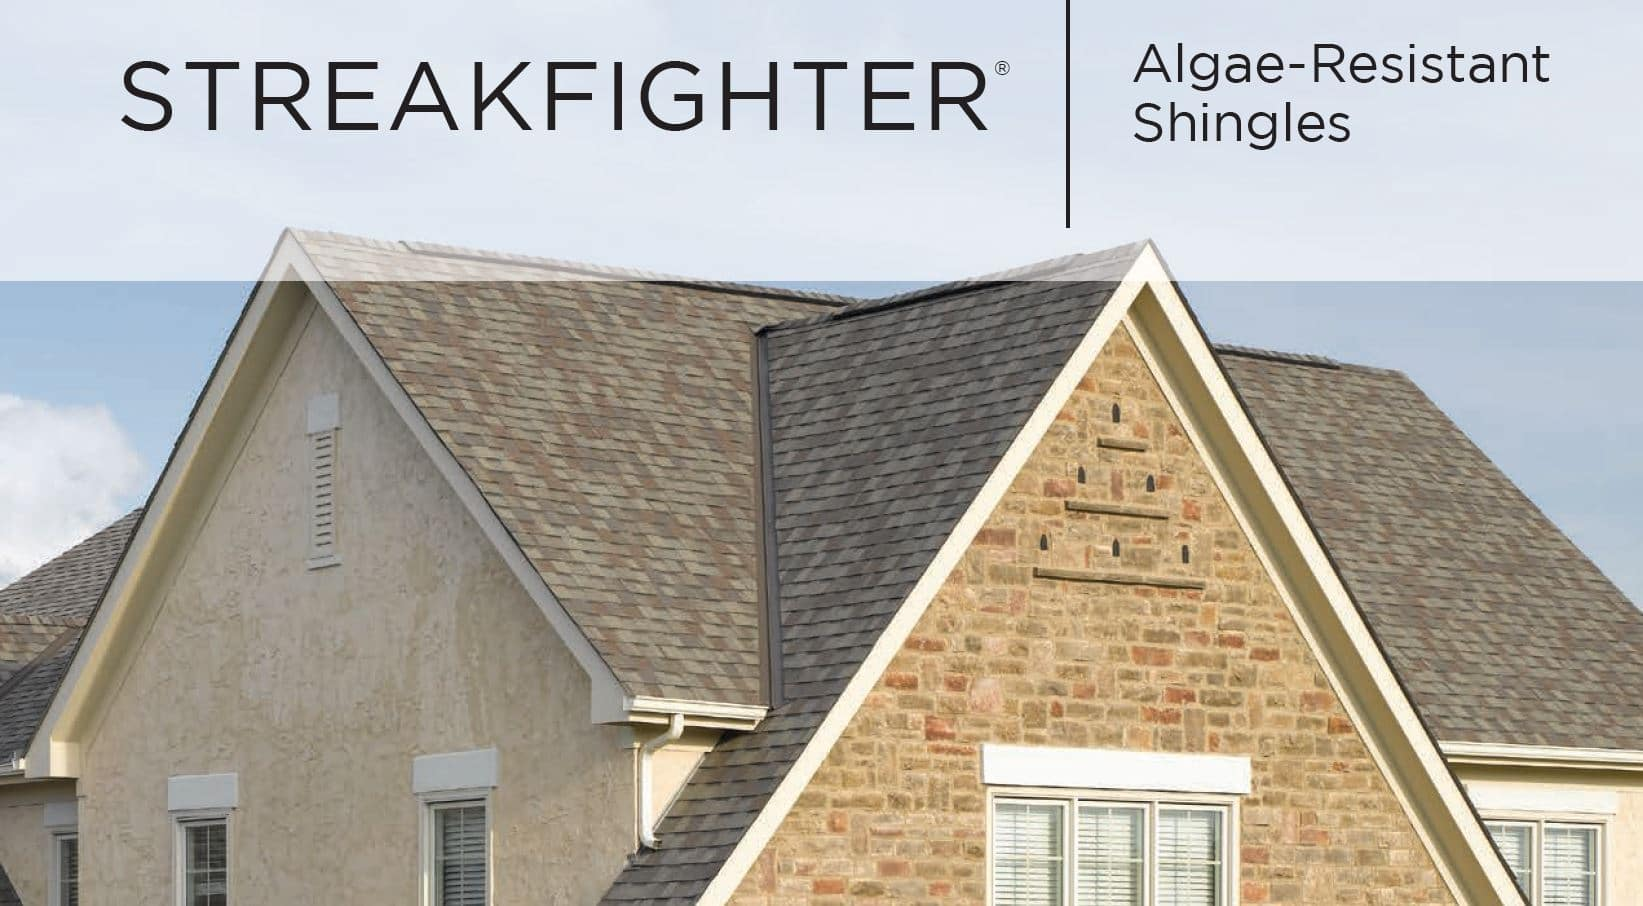 Design Tech Homes Uses CERTAINTEED'S STREAKFIGHTER® Algae-Resistant Technology 2